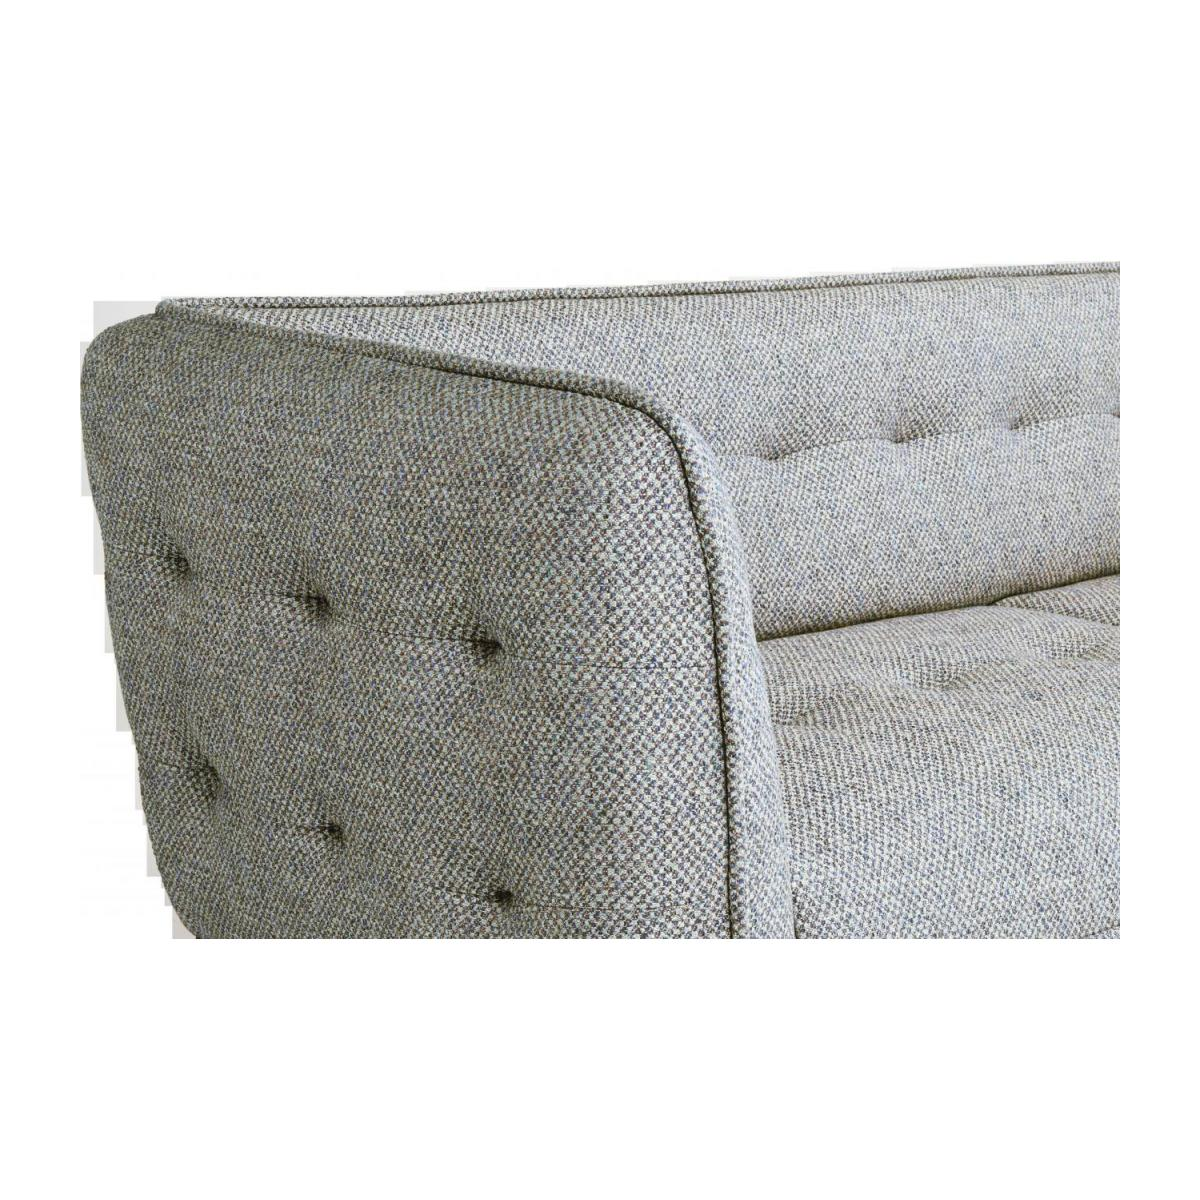 3 seater sofa in Bellagio fabric, organic green and dark legs n°6